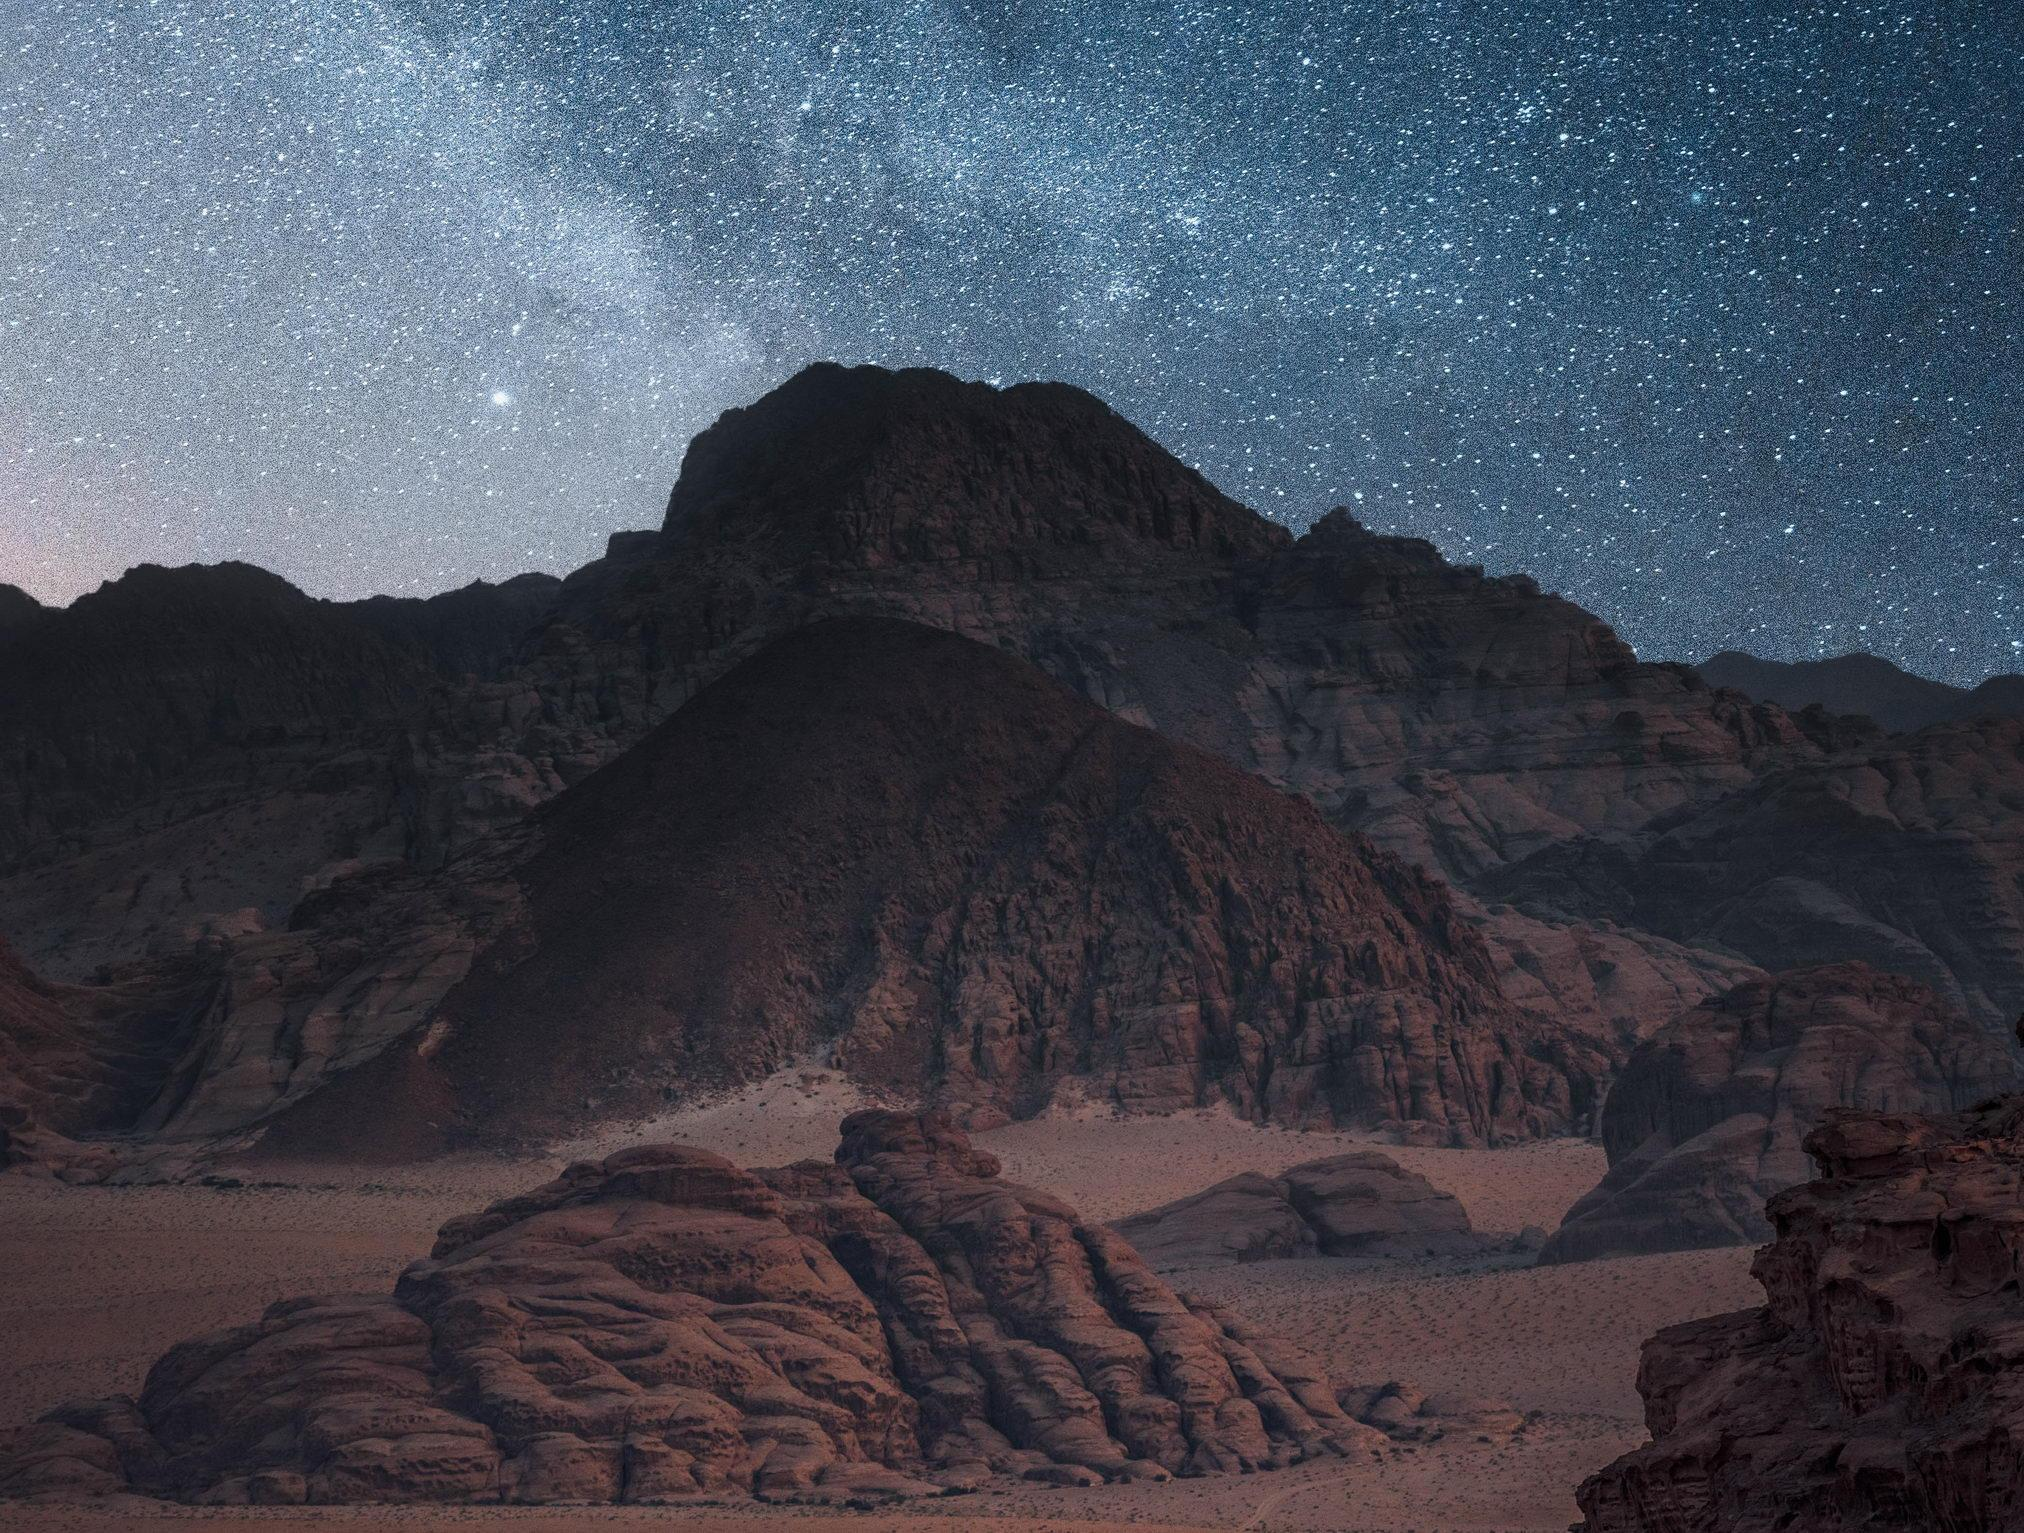 Wadi Rum Night Sky JPTT